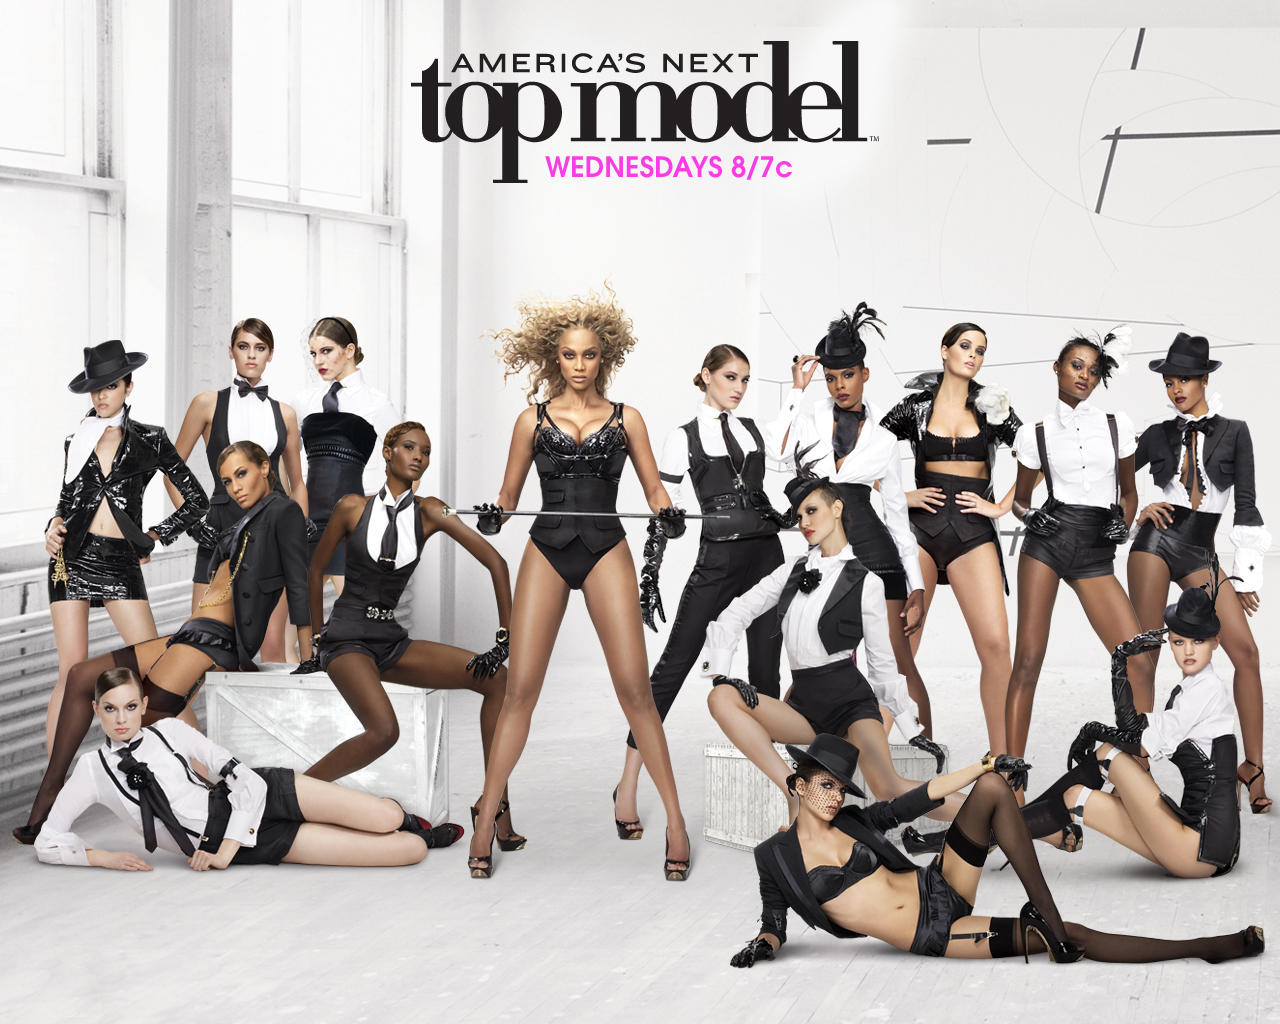 America's Next Top Model: Season 6